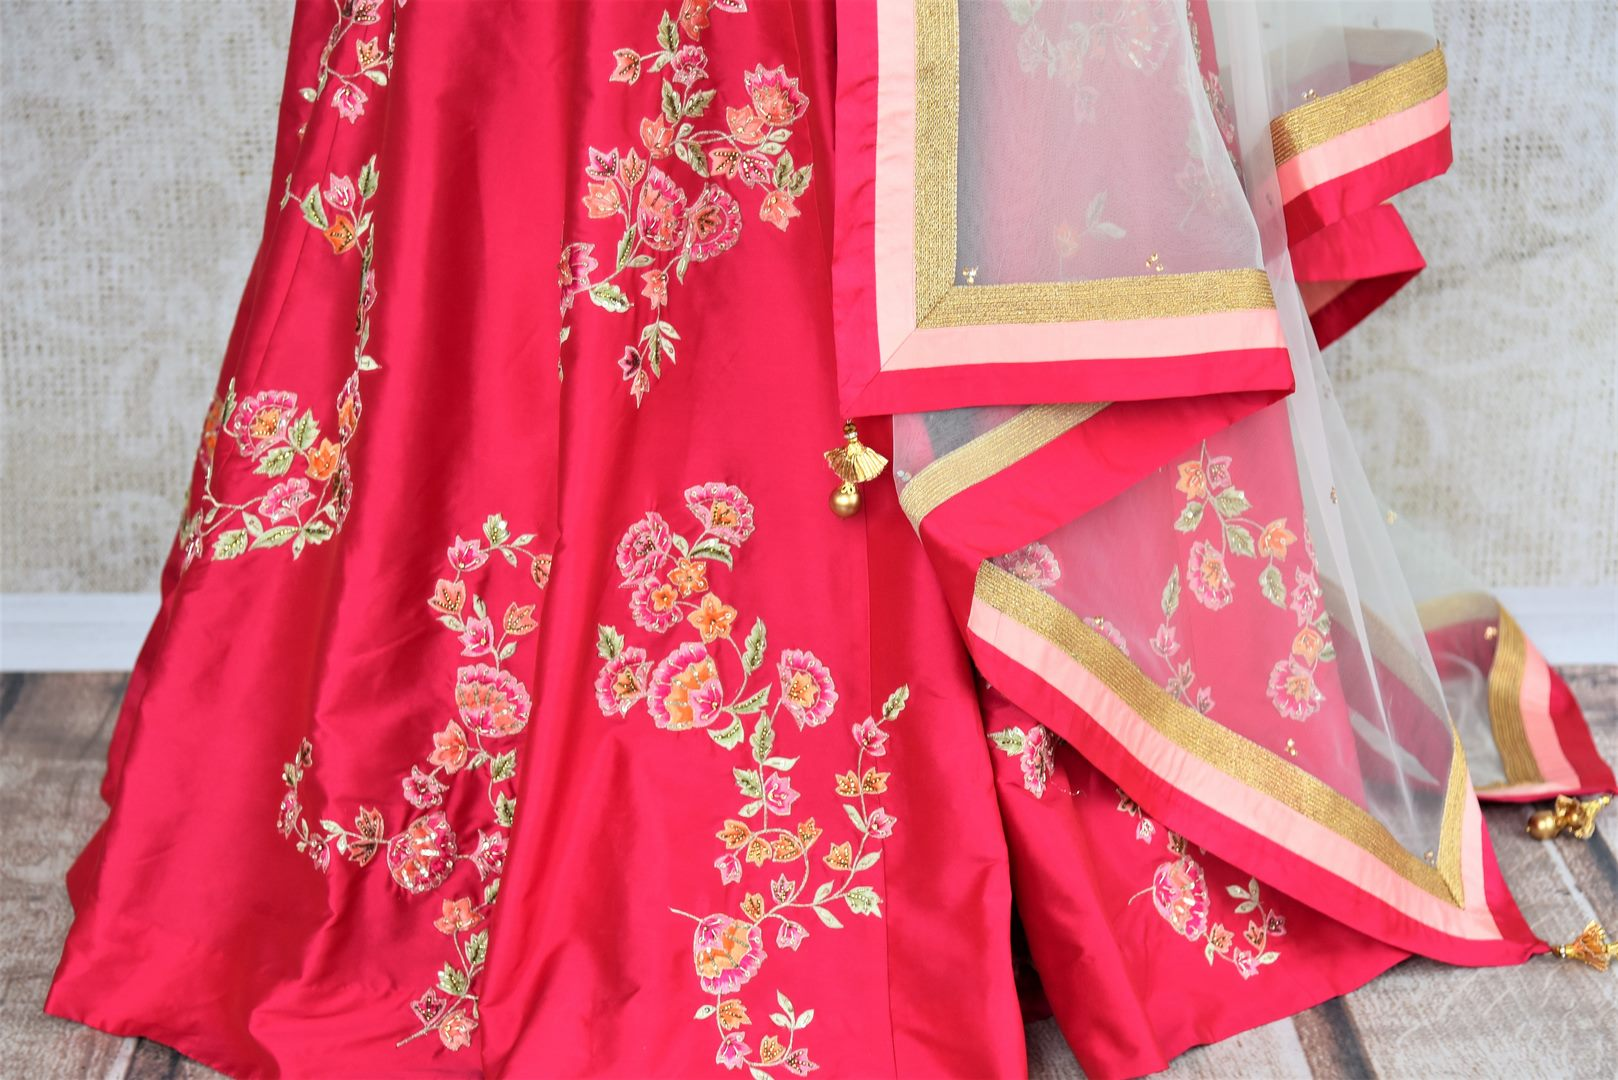 Buy beautiful pink embroidered silk lehenga with dupatta online in USA . The designer lehenga is a captivating choice for weddings. Shop Indian wedding lehengas in USA from an alluring collection available at Pure Elegance clothing store.-skirt